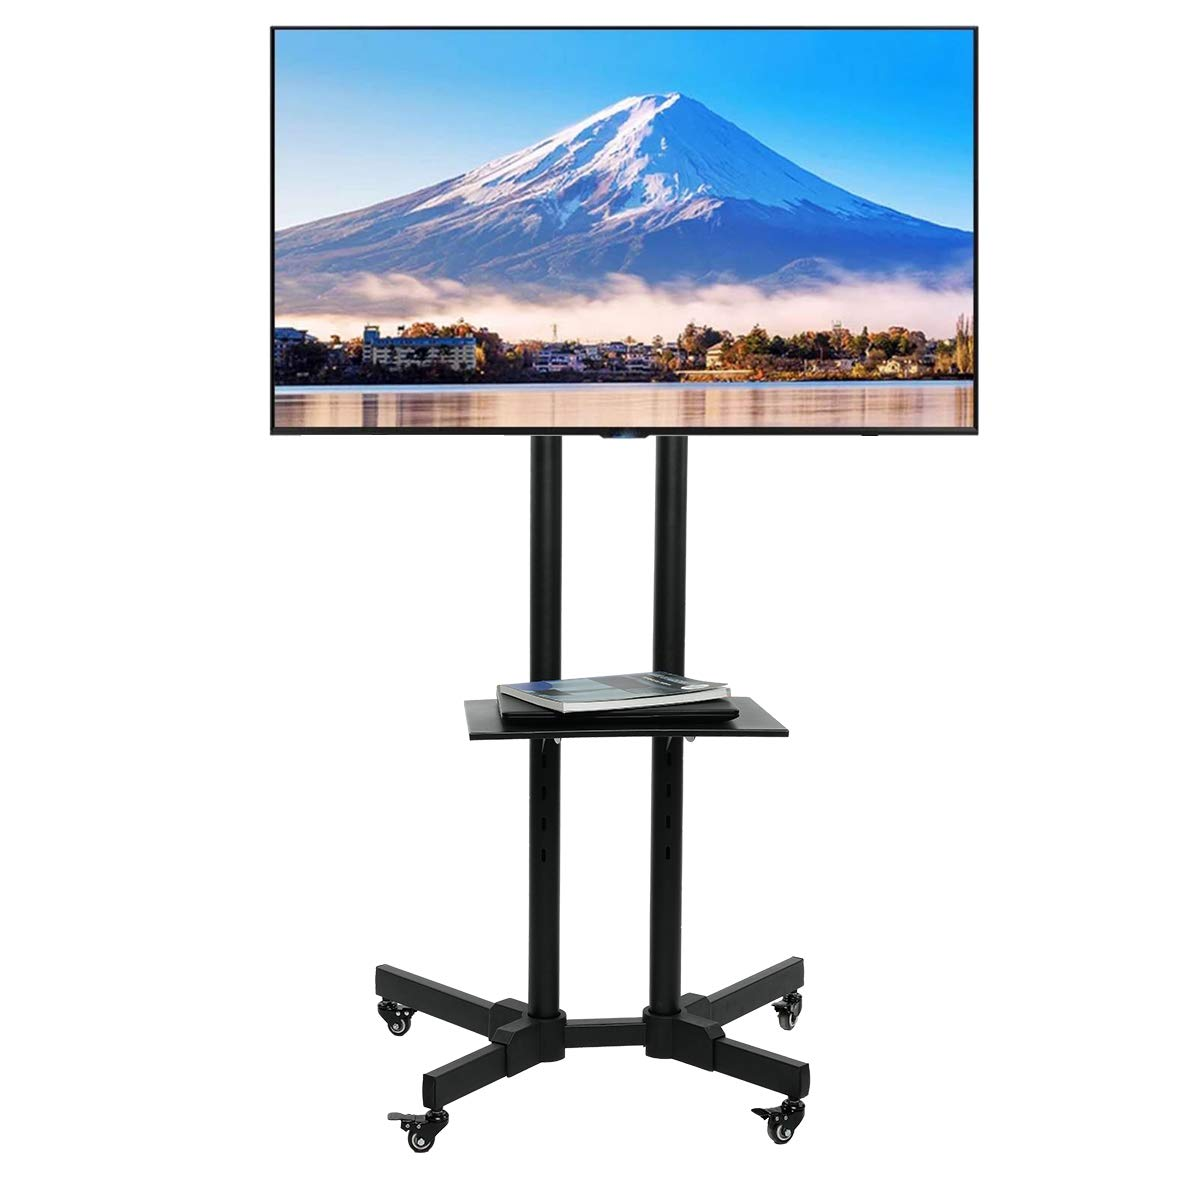 ORAF Rolling TV Cart Mobile TV Stand Height Adjustable with Locking Wheels for 32 to 65 inch LCD LED Plasma Flat Panel Screen